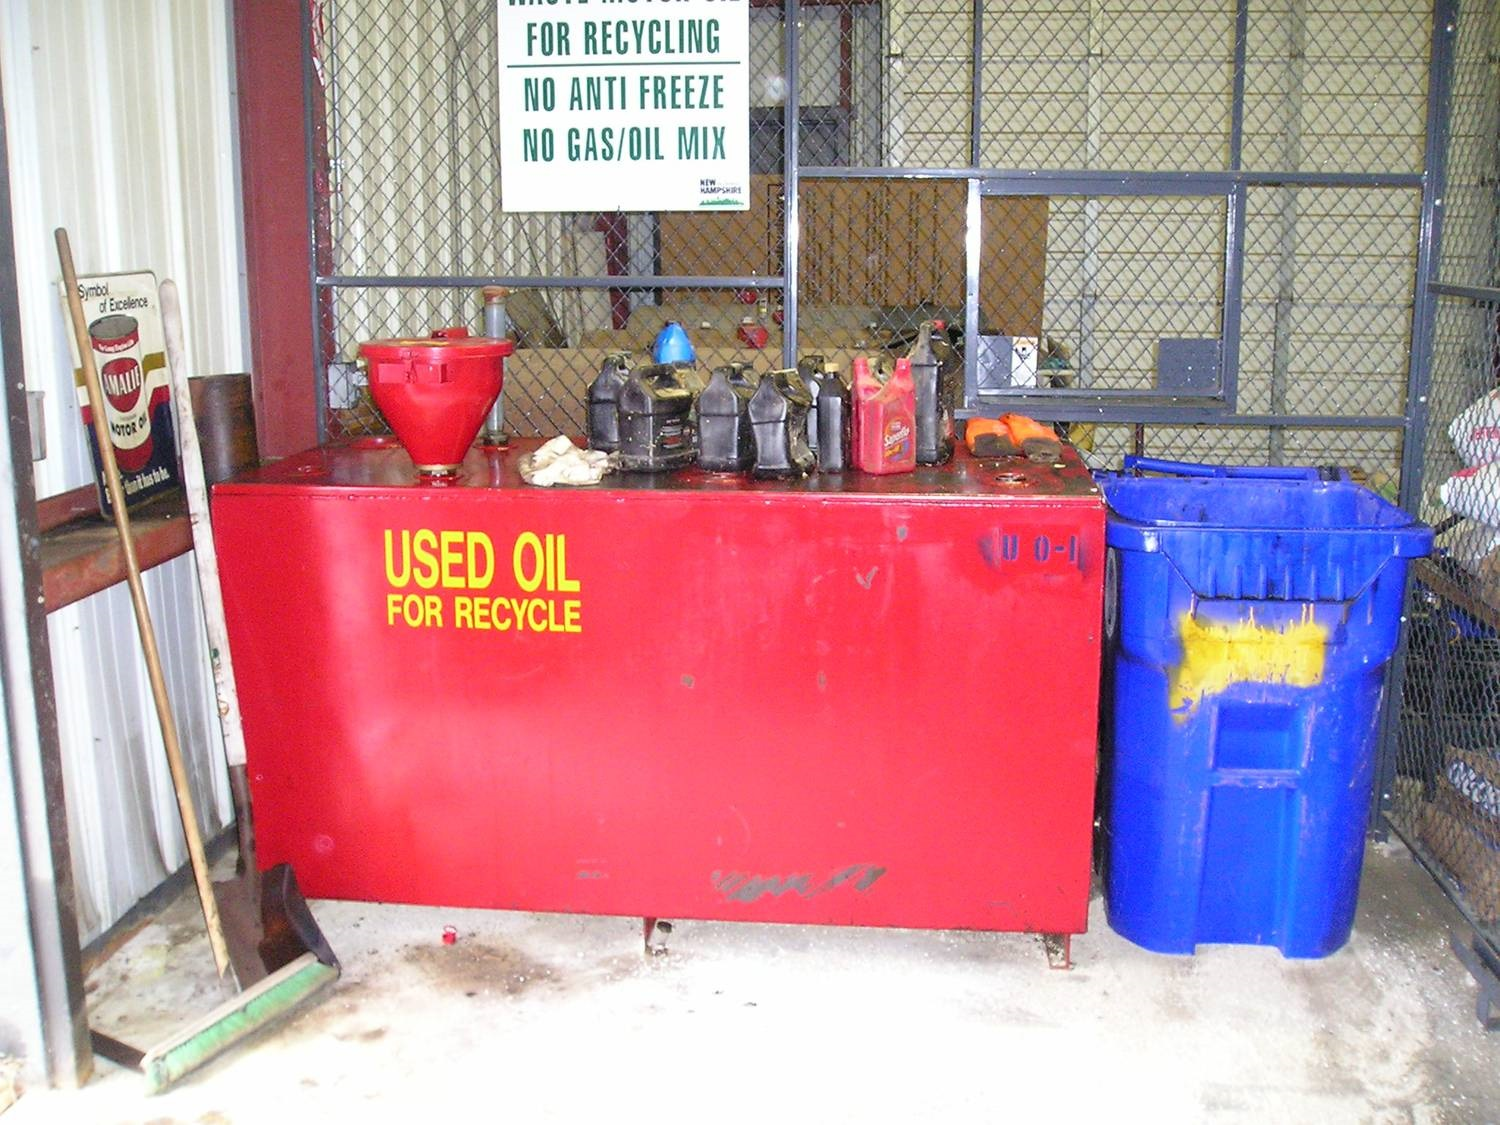 containers of used oil for recycling